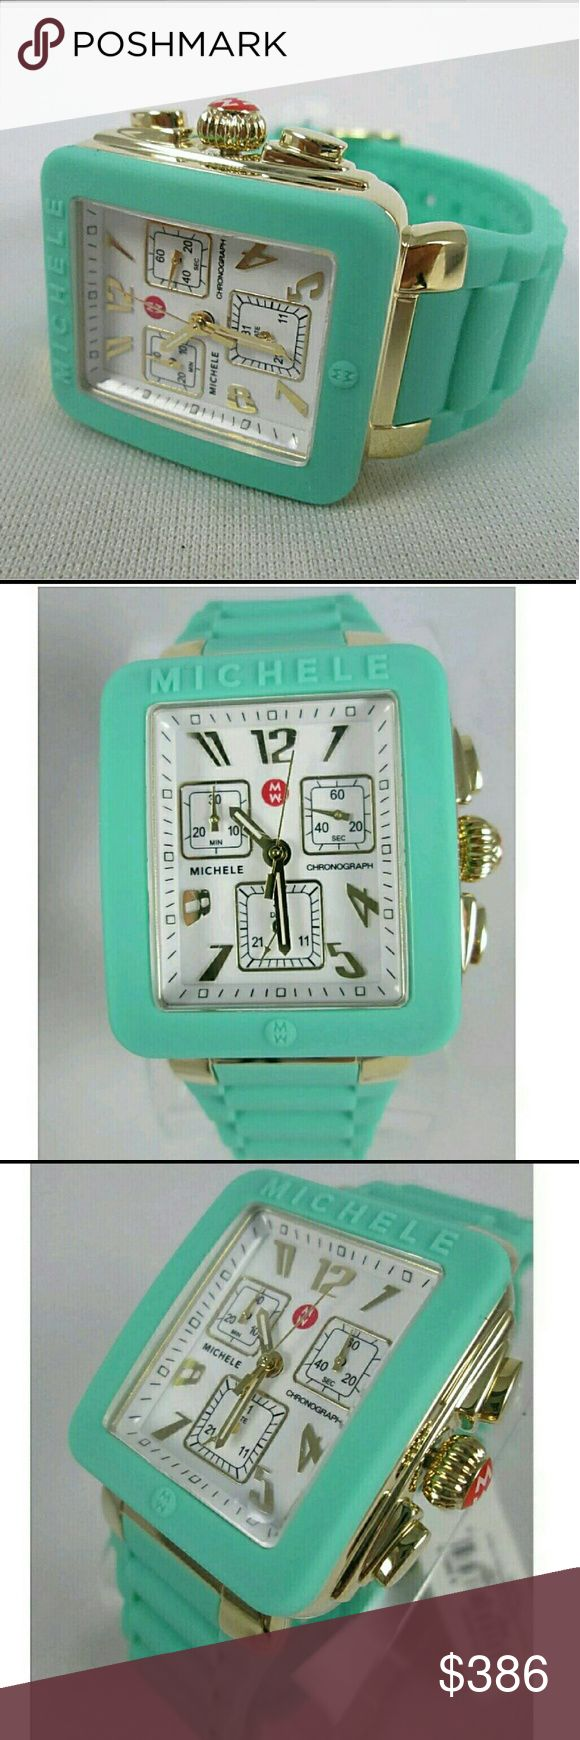 NWT Michele seaform ladies watch Brand New In Box Michele Silicone Band ladies watch.    FRIM PRICE FIRM PRICE FIRM?  $386.00  . AUTHENTIC WATCH?  . AUTHENTIC BOX  . AUTHENTIC MANUAL?    SHIPPING?  PLEASE ALLOW FEW BUSINESS DAYS FOR ME TO SHIPPED IT OFF.I HAVE TO GET IT FROM MY STORE.?    THANK YOU FOR YOUR UNDERSTANDING. Michele Accessories Watches